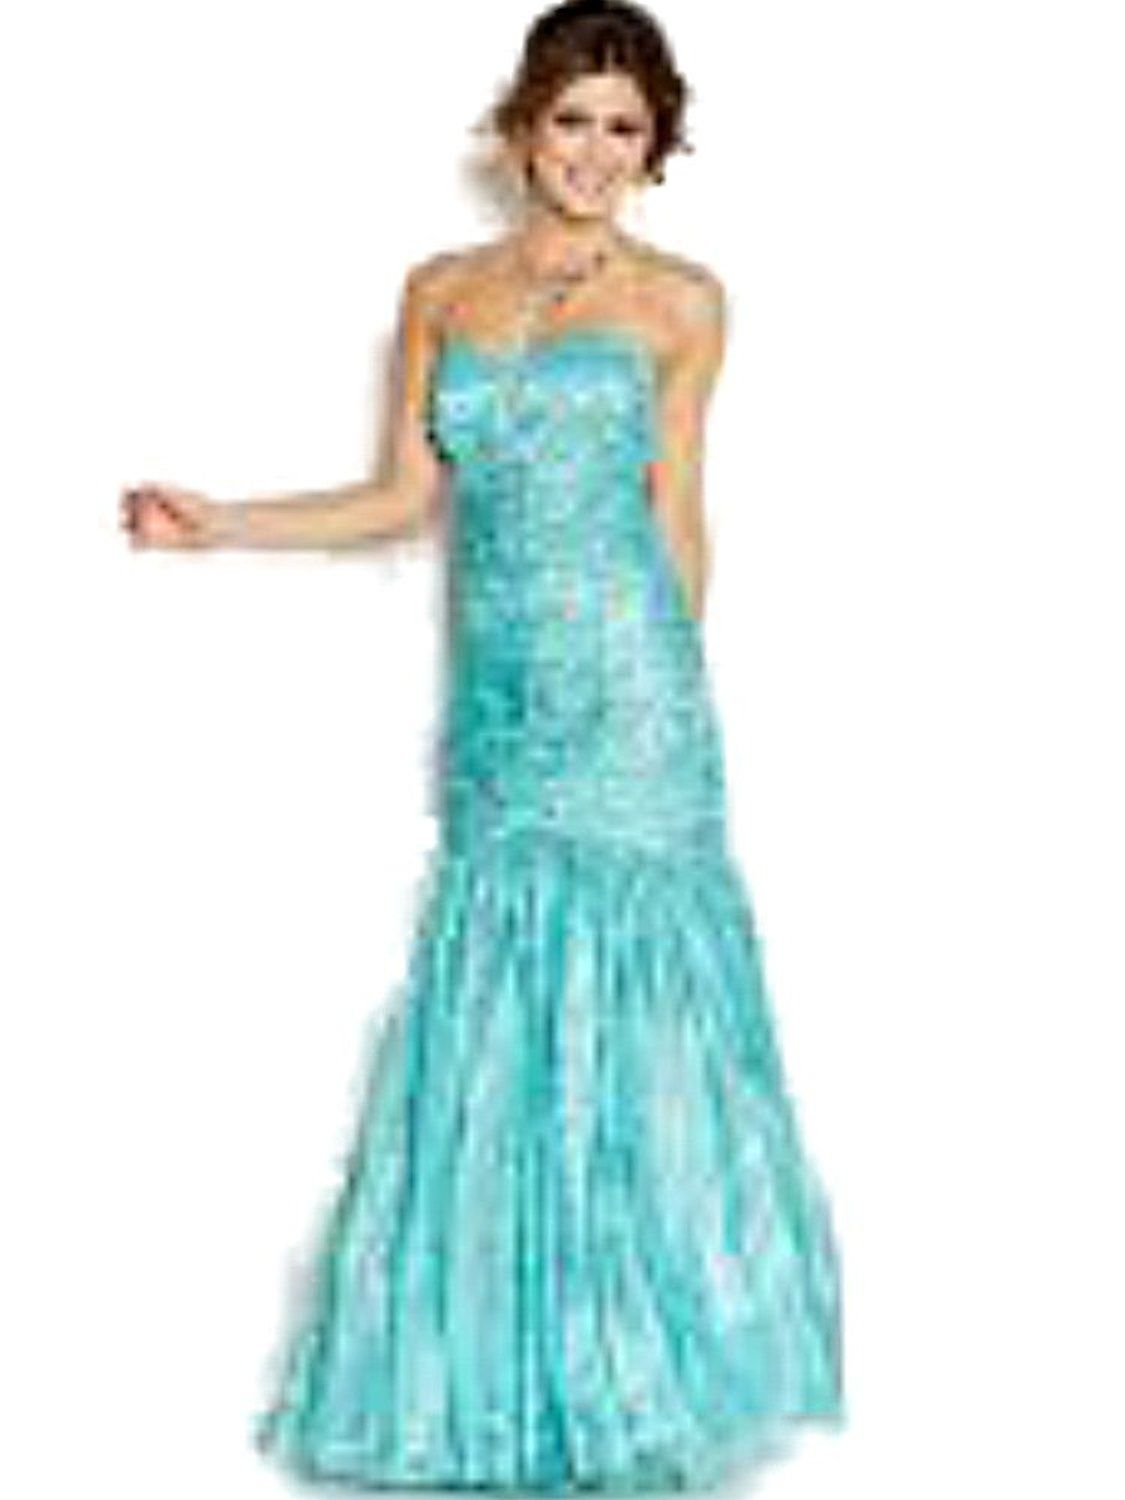 JUMP Aquamarine Satin Tule Strapless Ruched Embellished Mermaid Prom ...